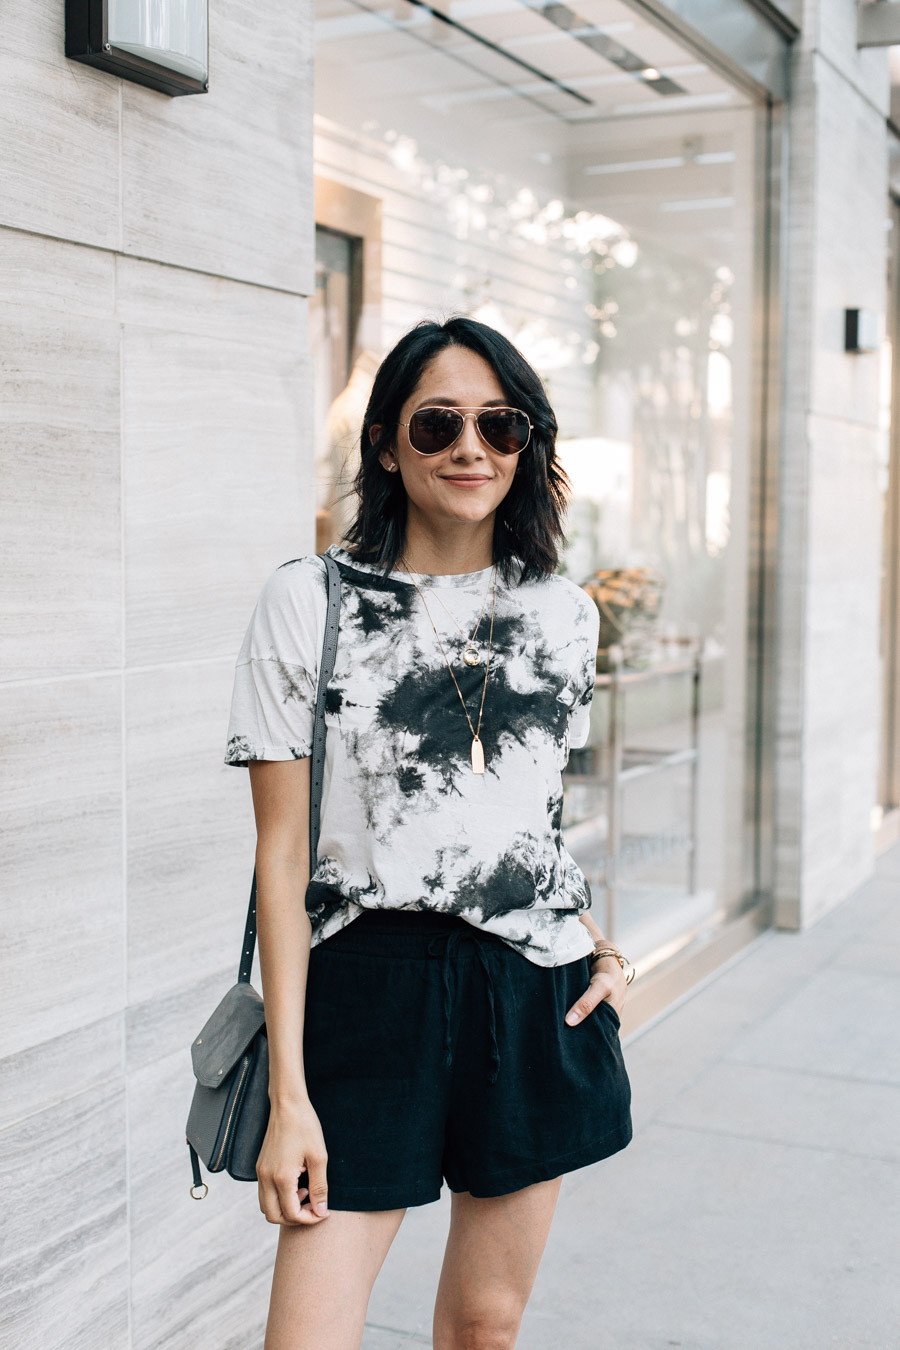 Fashion blogger Lilly Beltran wearing a black & white tie-dye shirt with black linen shorts and black slide sandals for a chic summer look